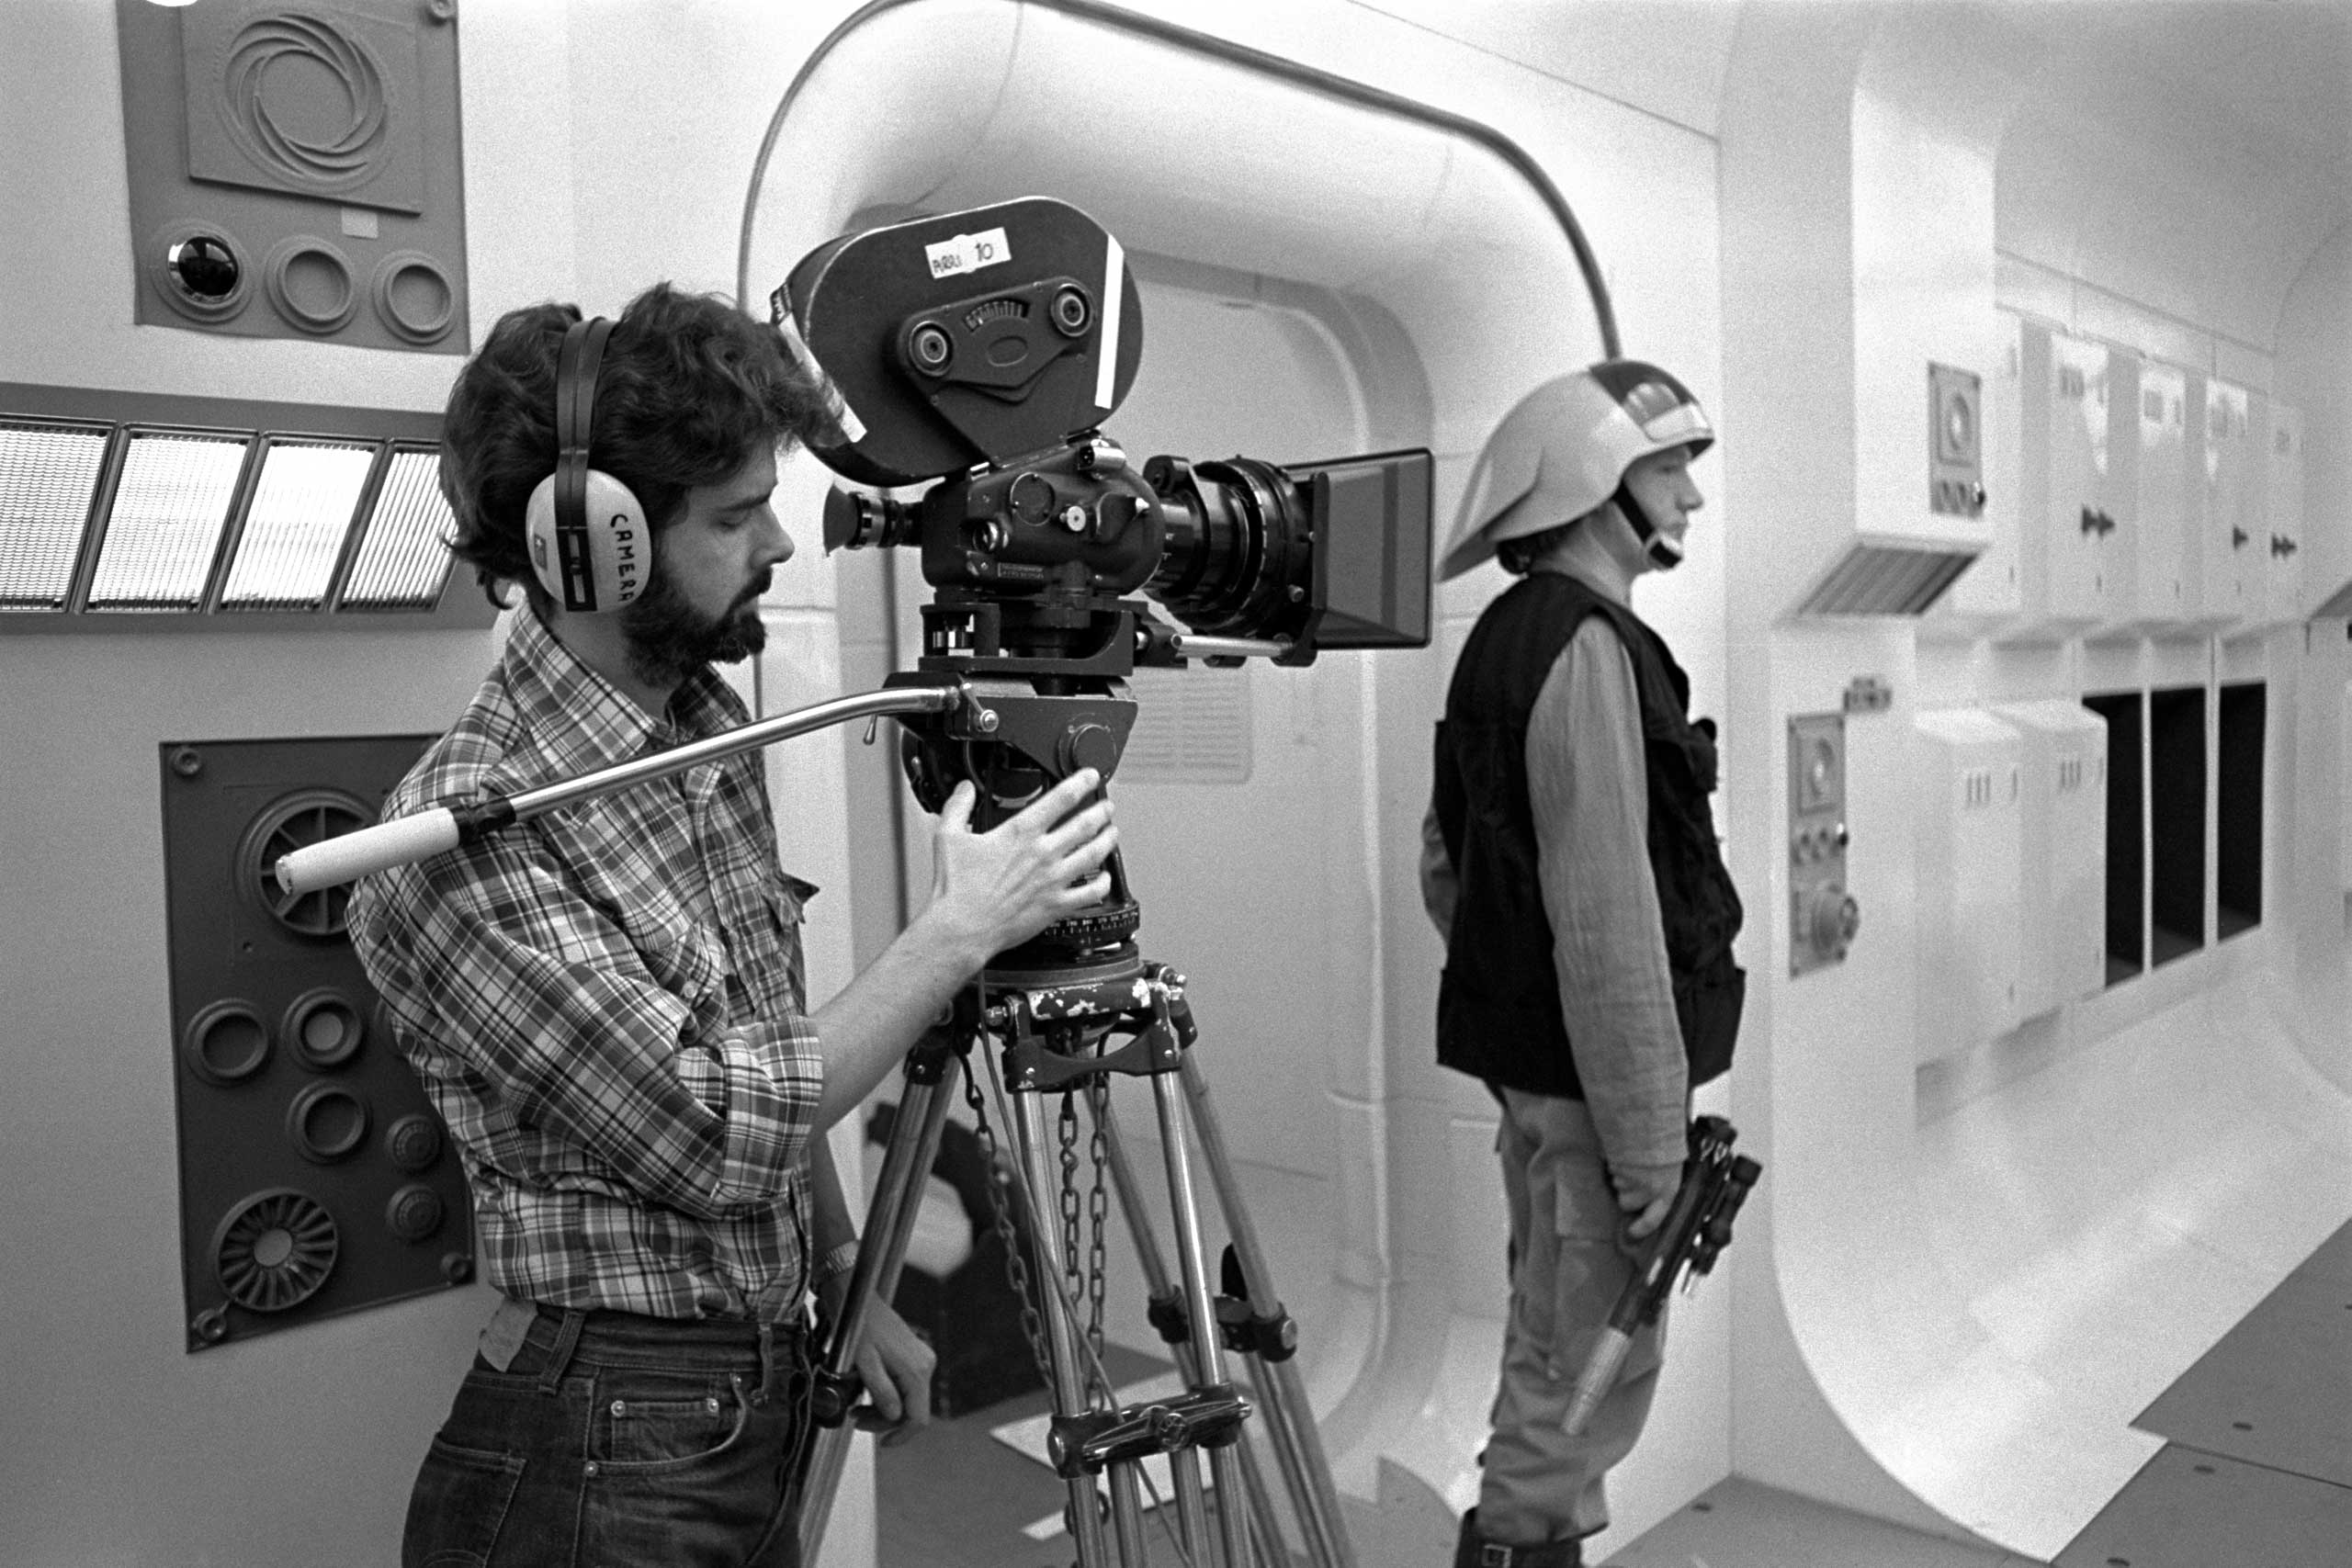 Lucas on set filming the opening scene of <i>Star Wars: Episode IV - A New Hope</i>.